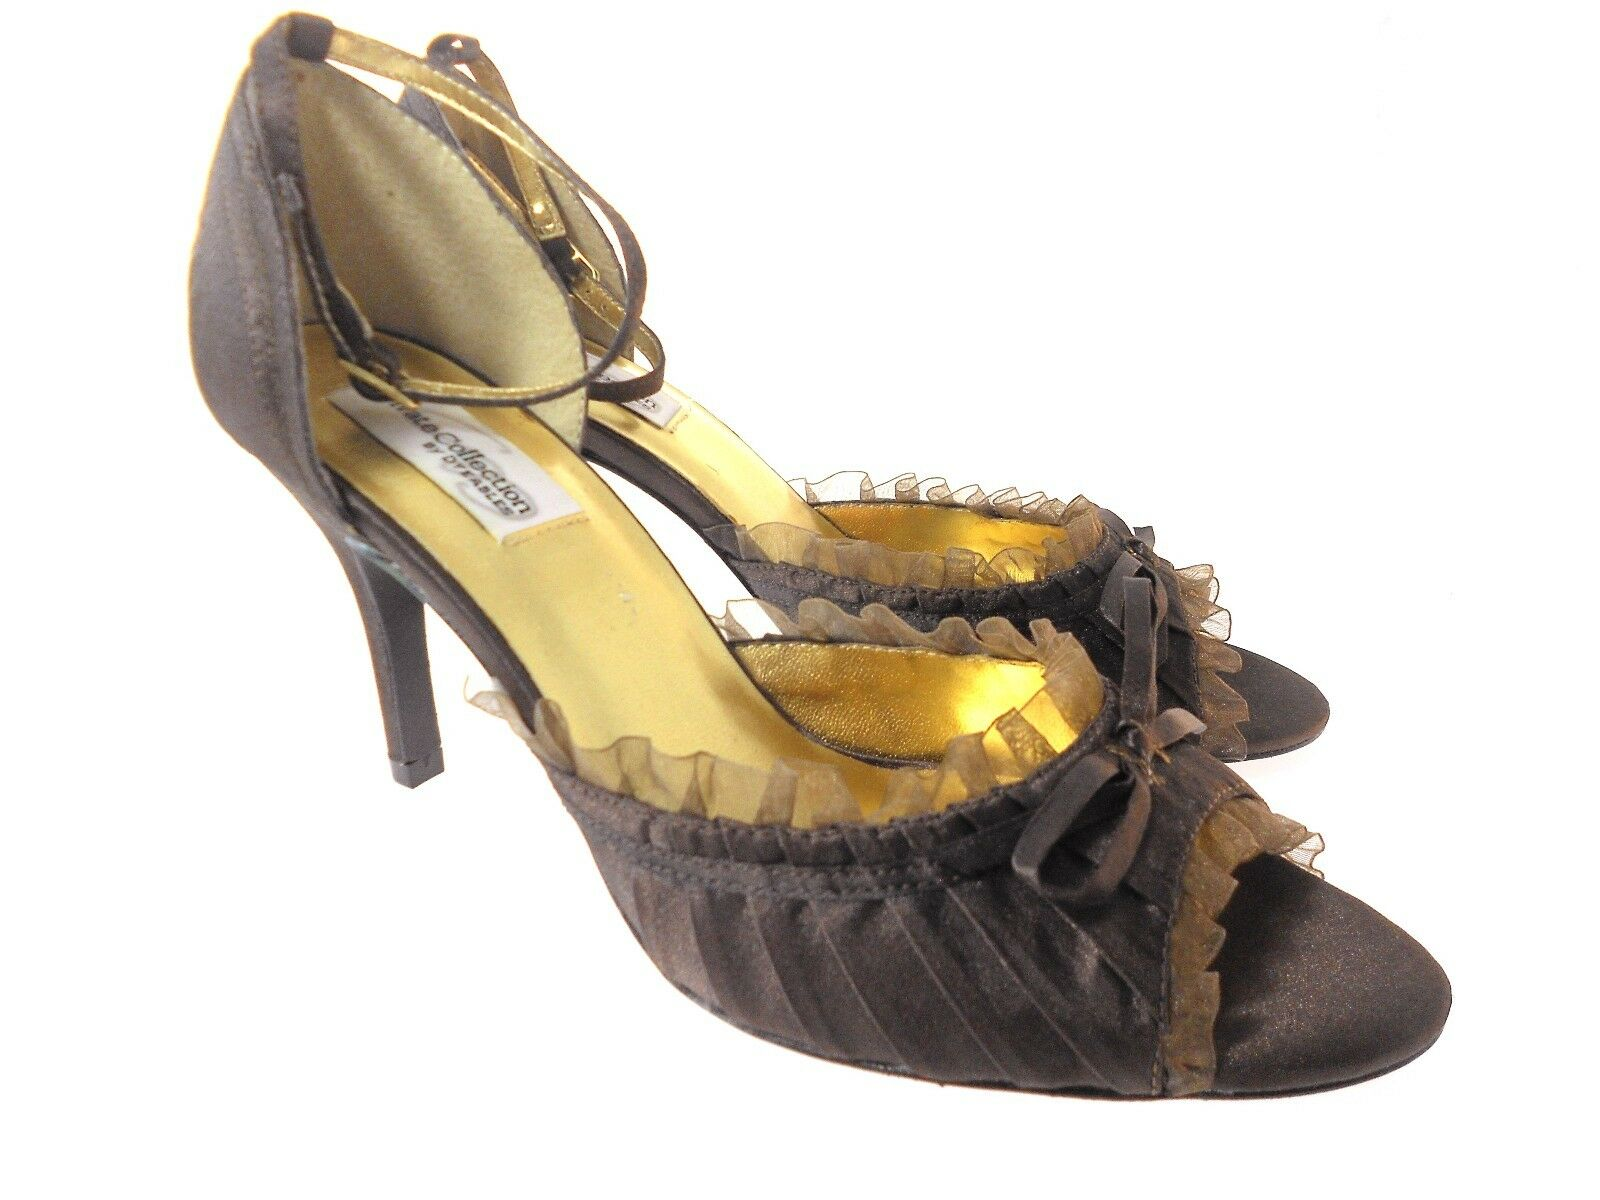 DYEABLES FRILLY CHOCOLATE BROWN SATIN SHOES WOMEN'S SIZE 9